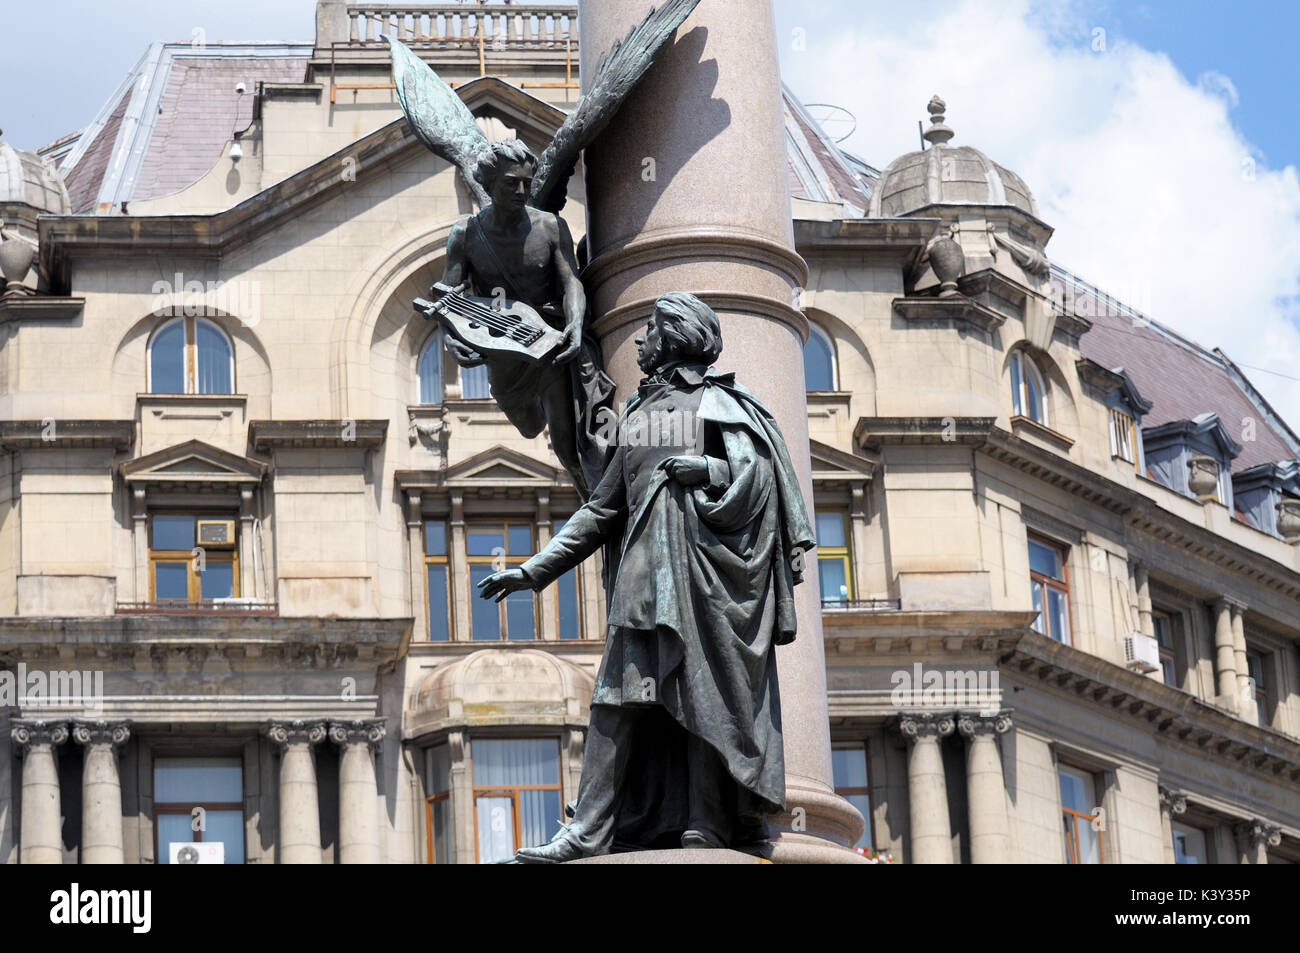 The monument to Adam Mickiewicz in Lviv - Stock Image